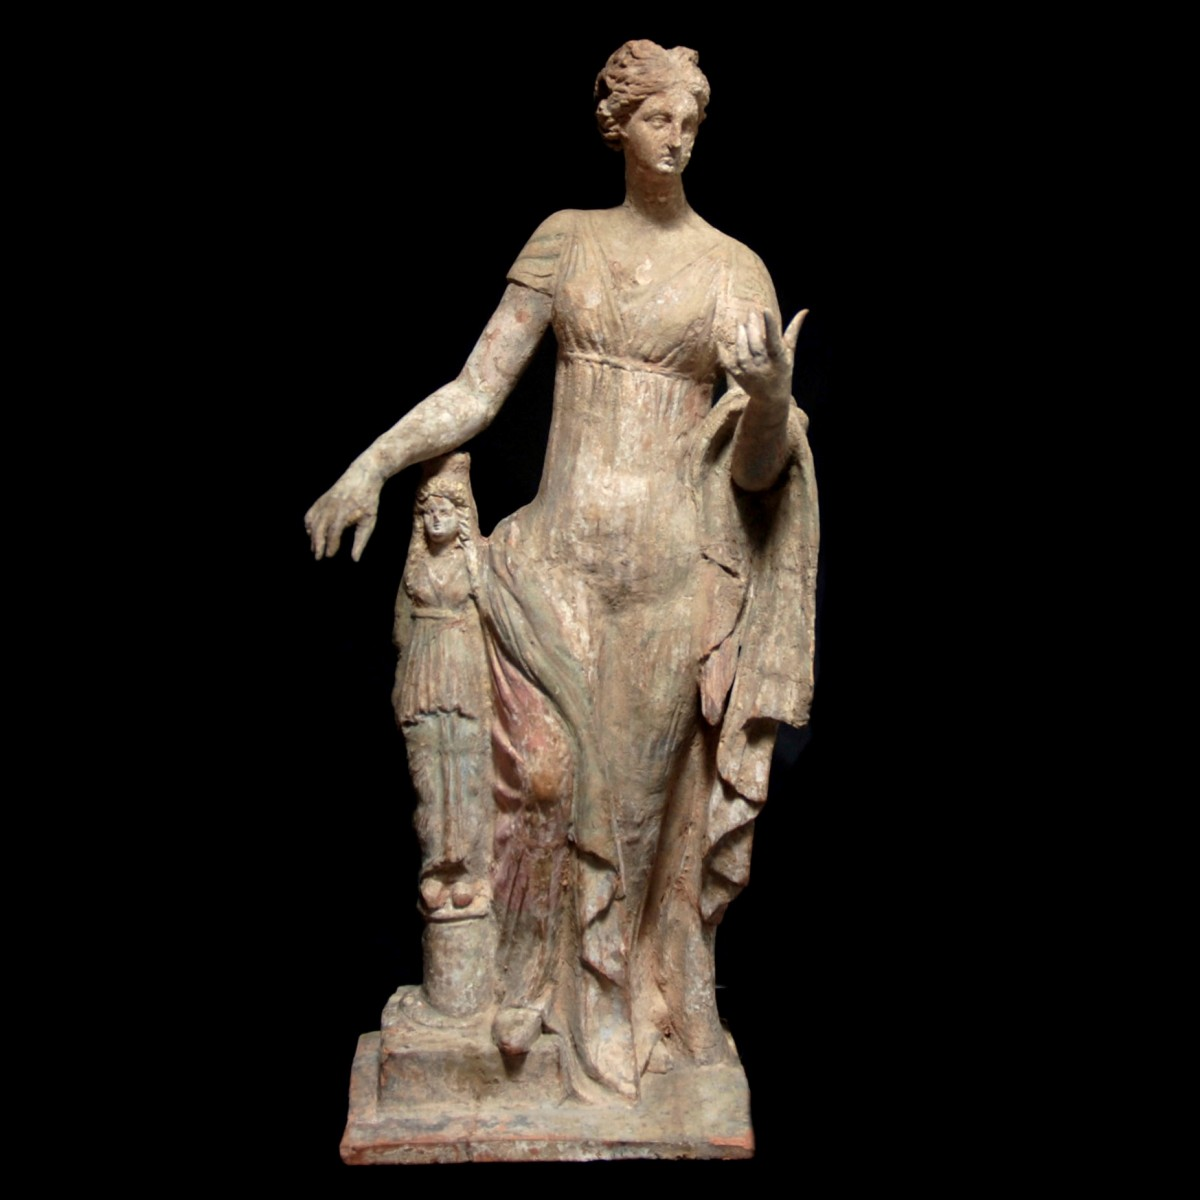 Terracotta statuette of Aphrodite leaning on a statue